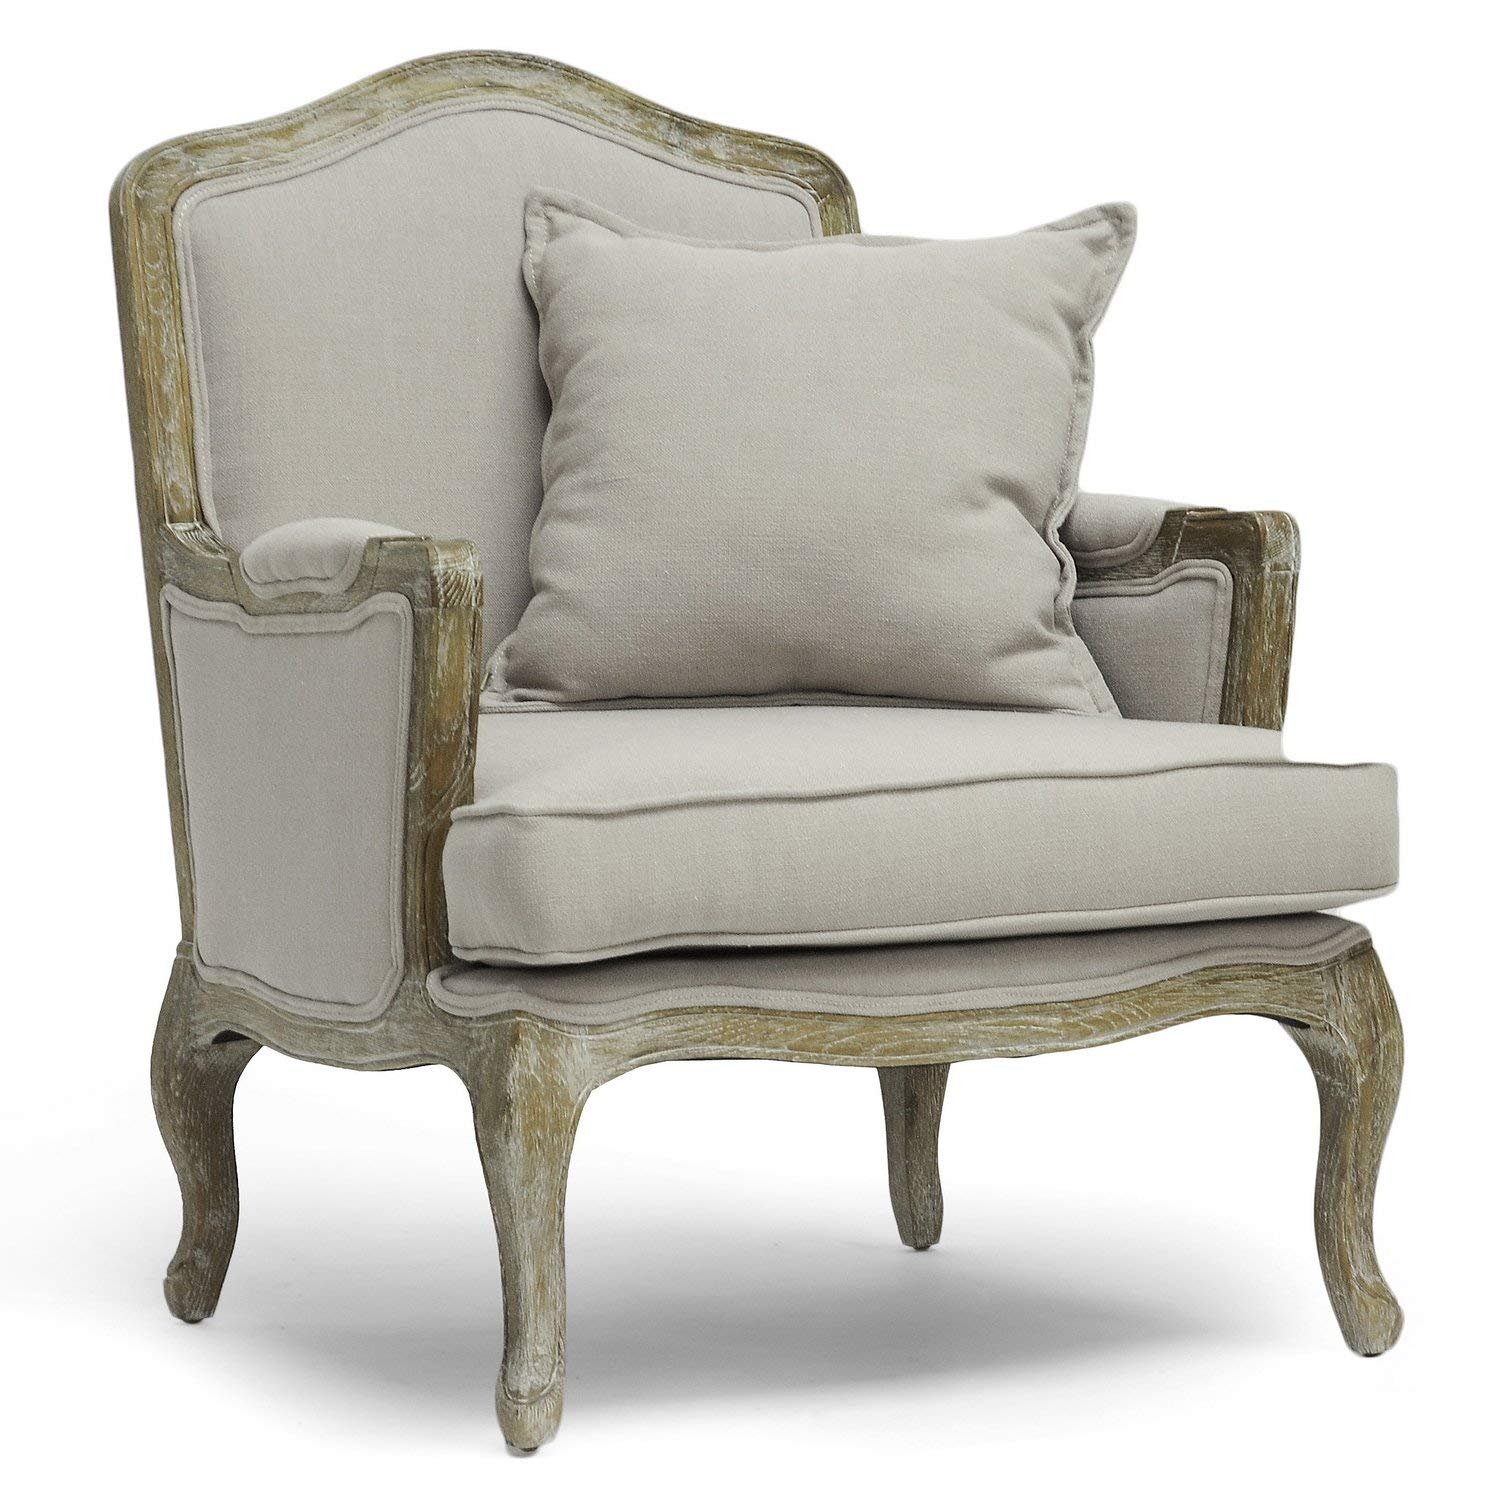 Traveller Location - Baxton Studio Constanza Classic Antiqued French Accent Chair,  29.25L x 29W x 37.25H, Beige - Chairs